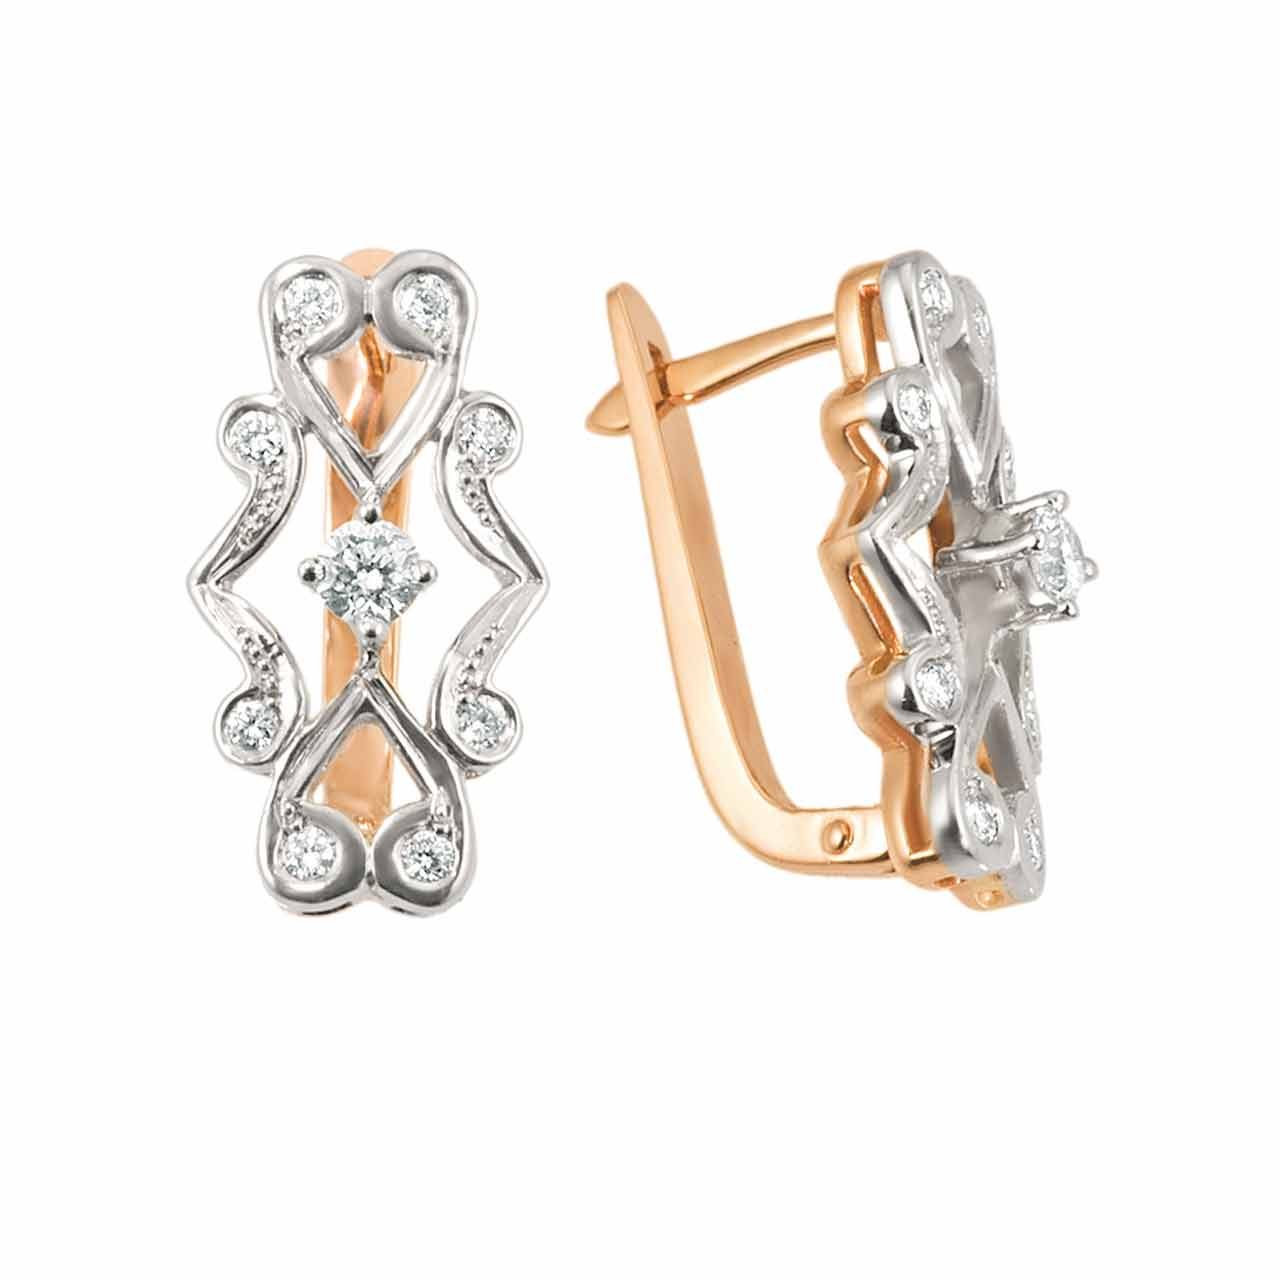 Faberge Epoch-Inspired Diamond Earrings